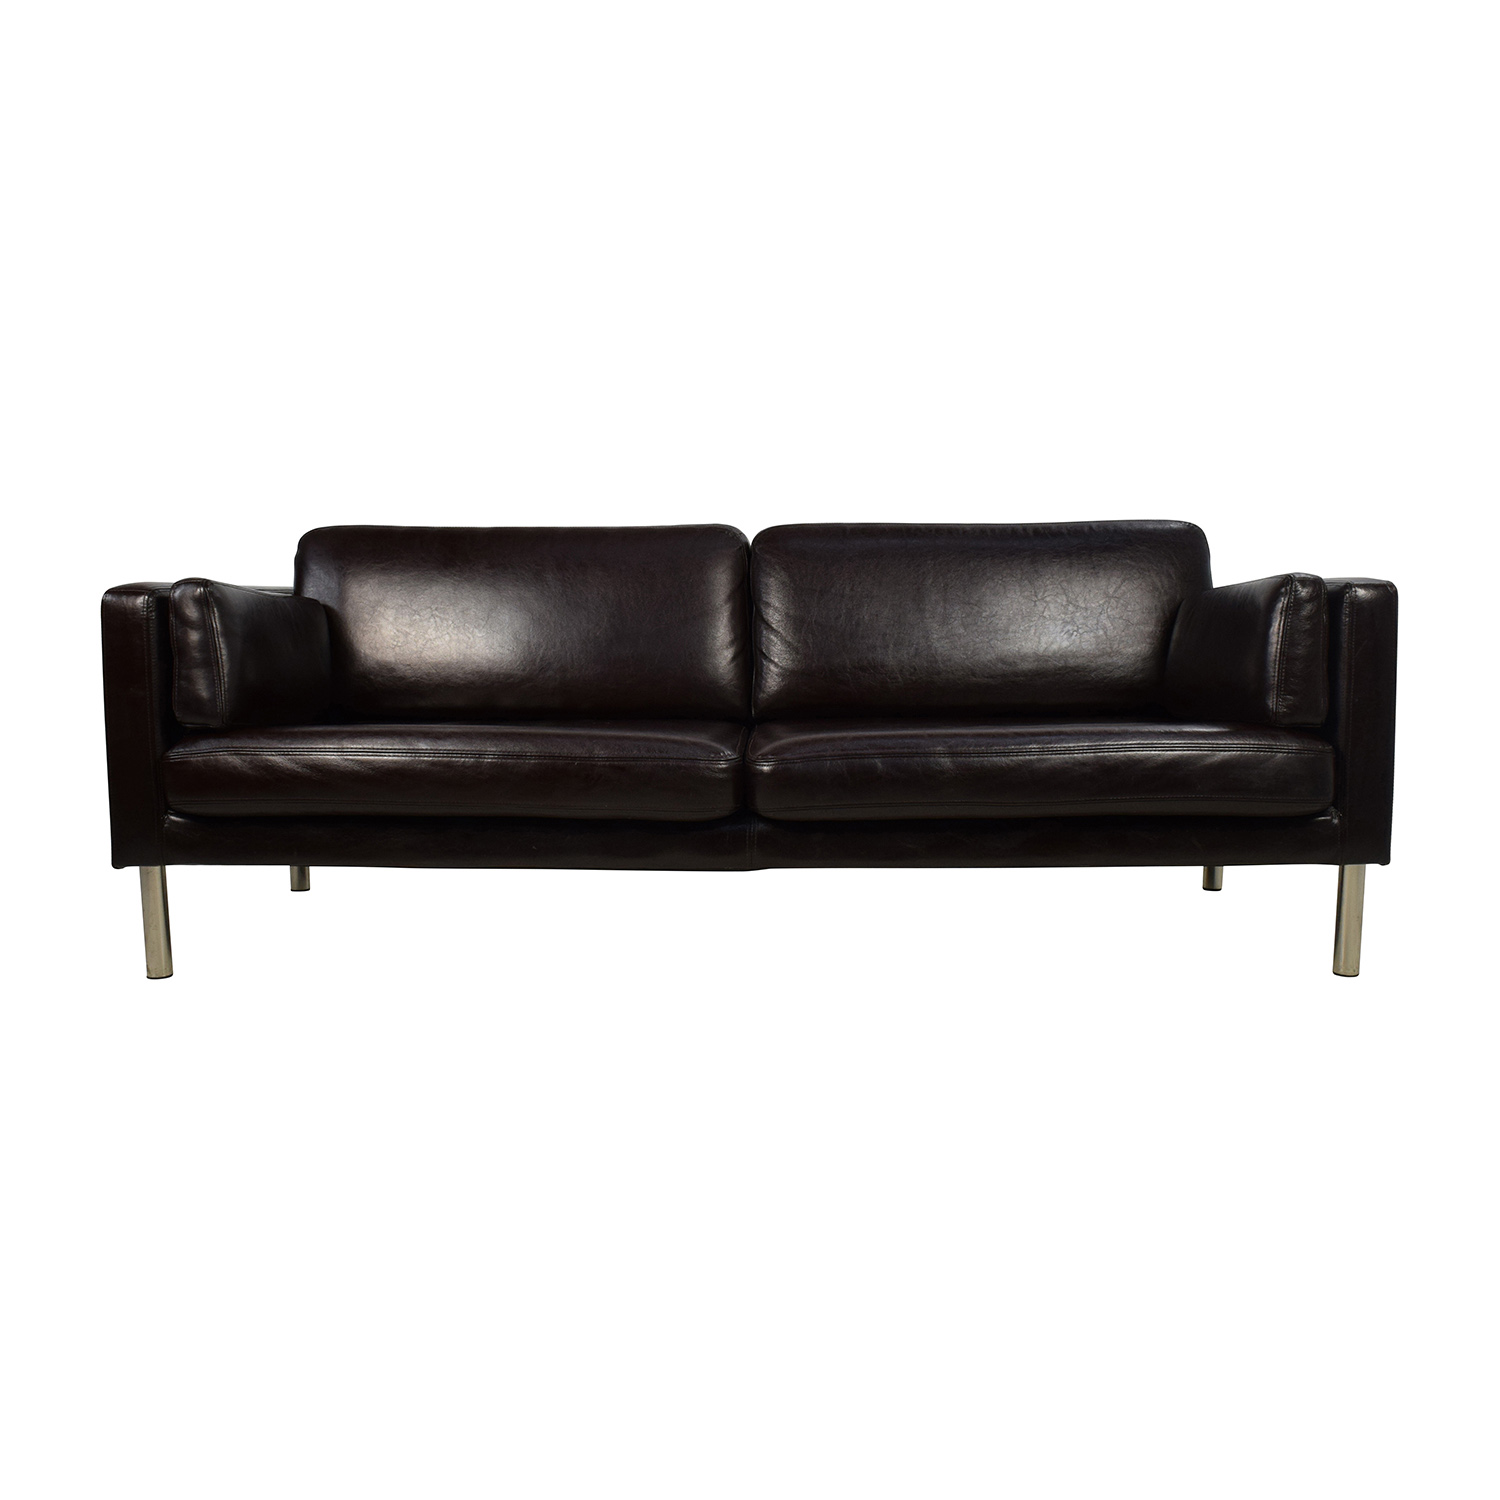 76% OFF - Brown Leather Sofa with Chrome Legs / Sofas